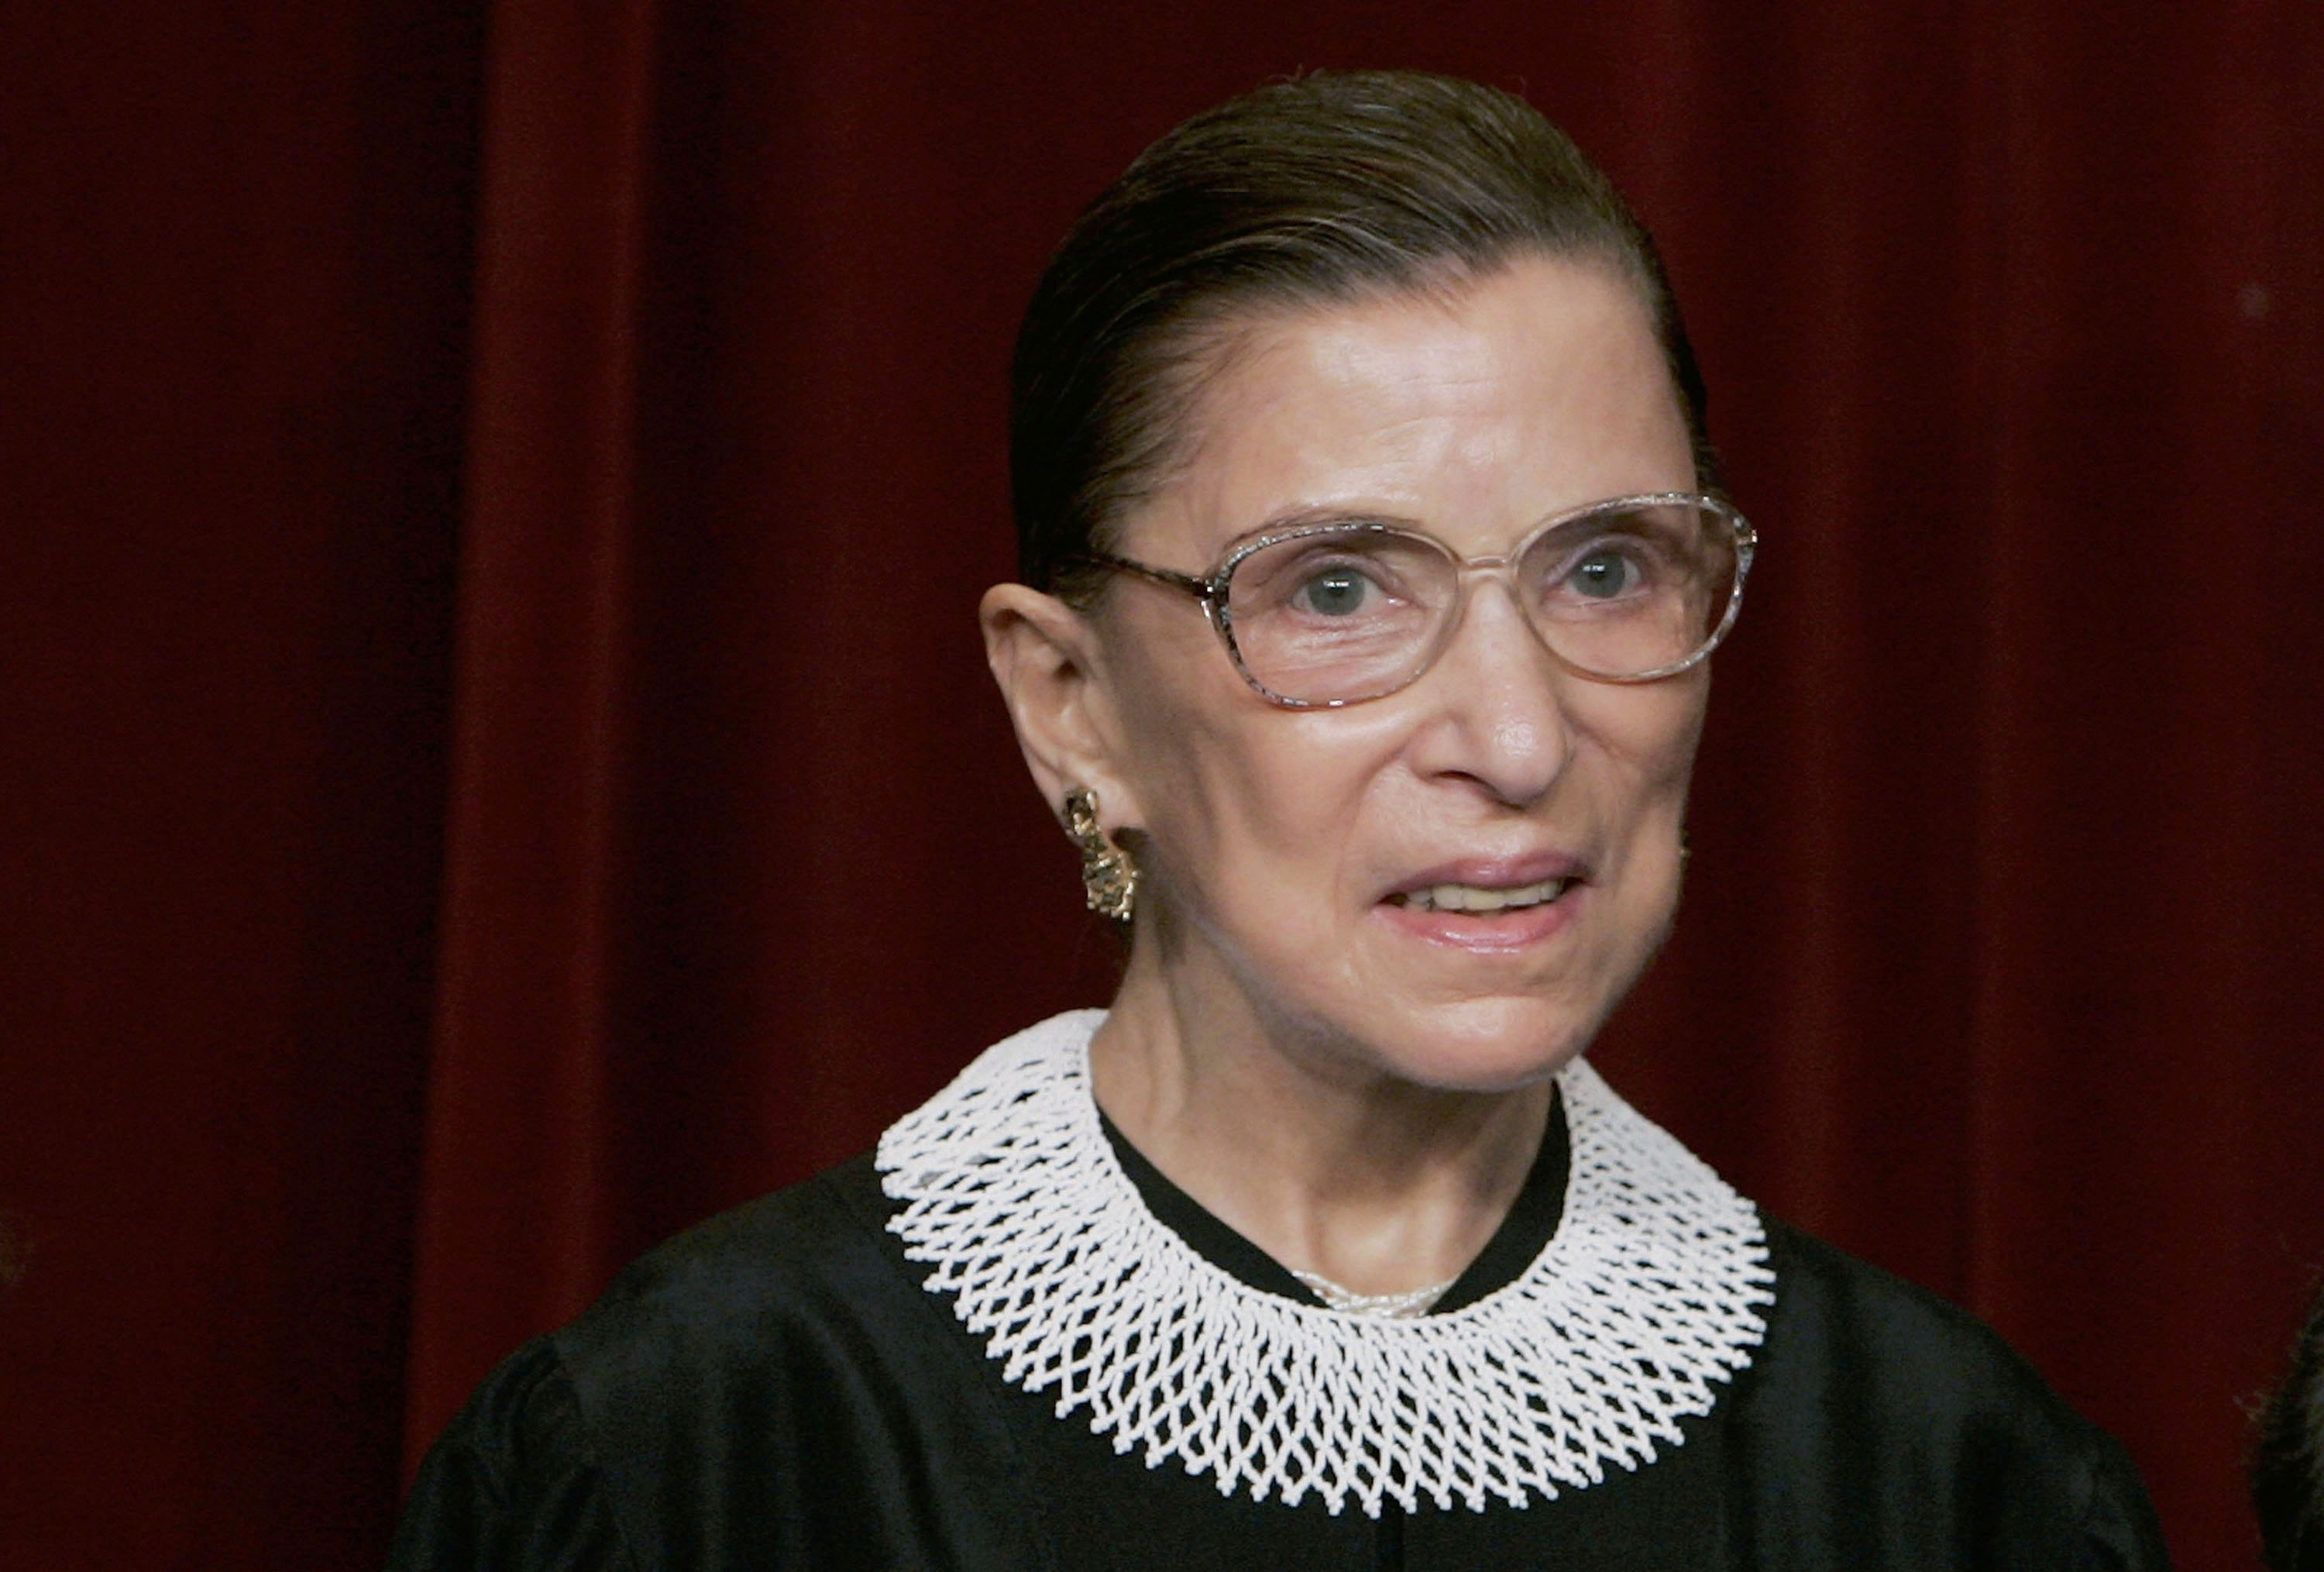 Oh Law Firm >> Justice Ruth Bader Ginsburg: A Dedicated Crusader For Women's Equality | Above the Law